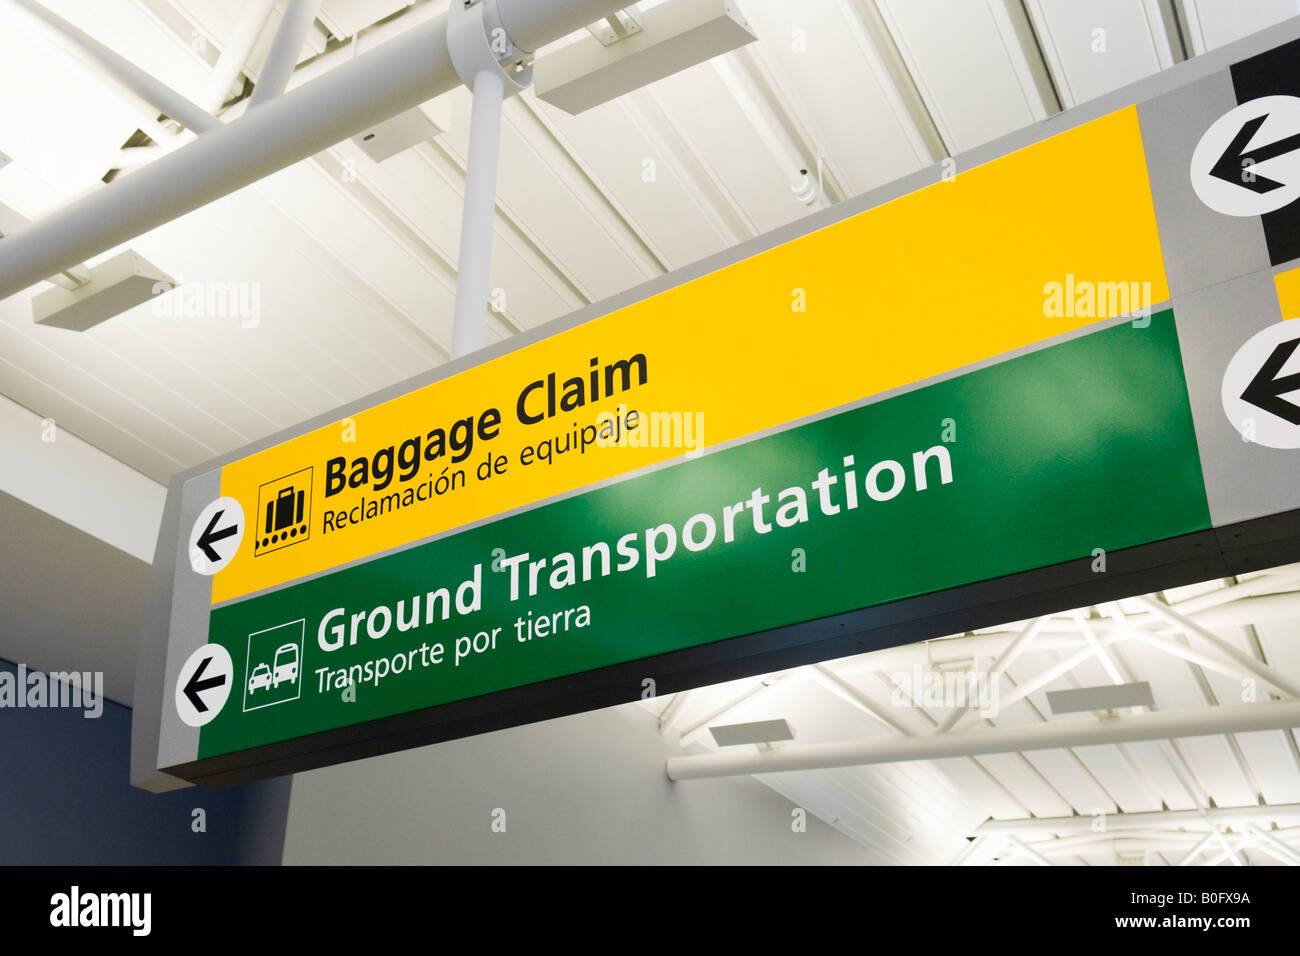 Signs For Baggage Reclaim Ground Transportation In